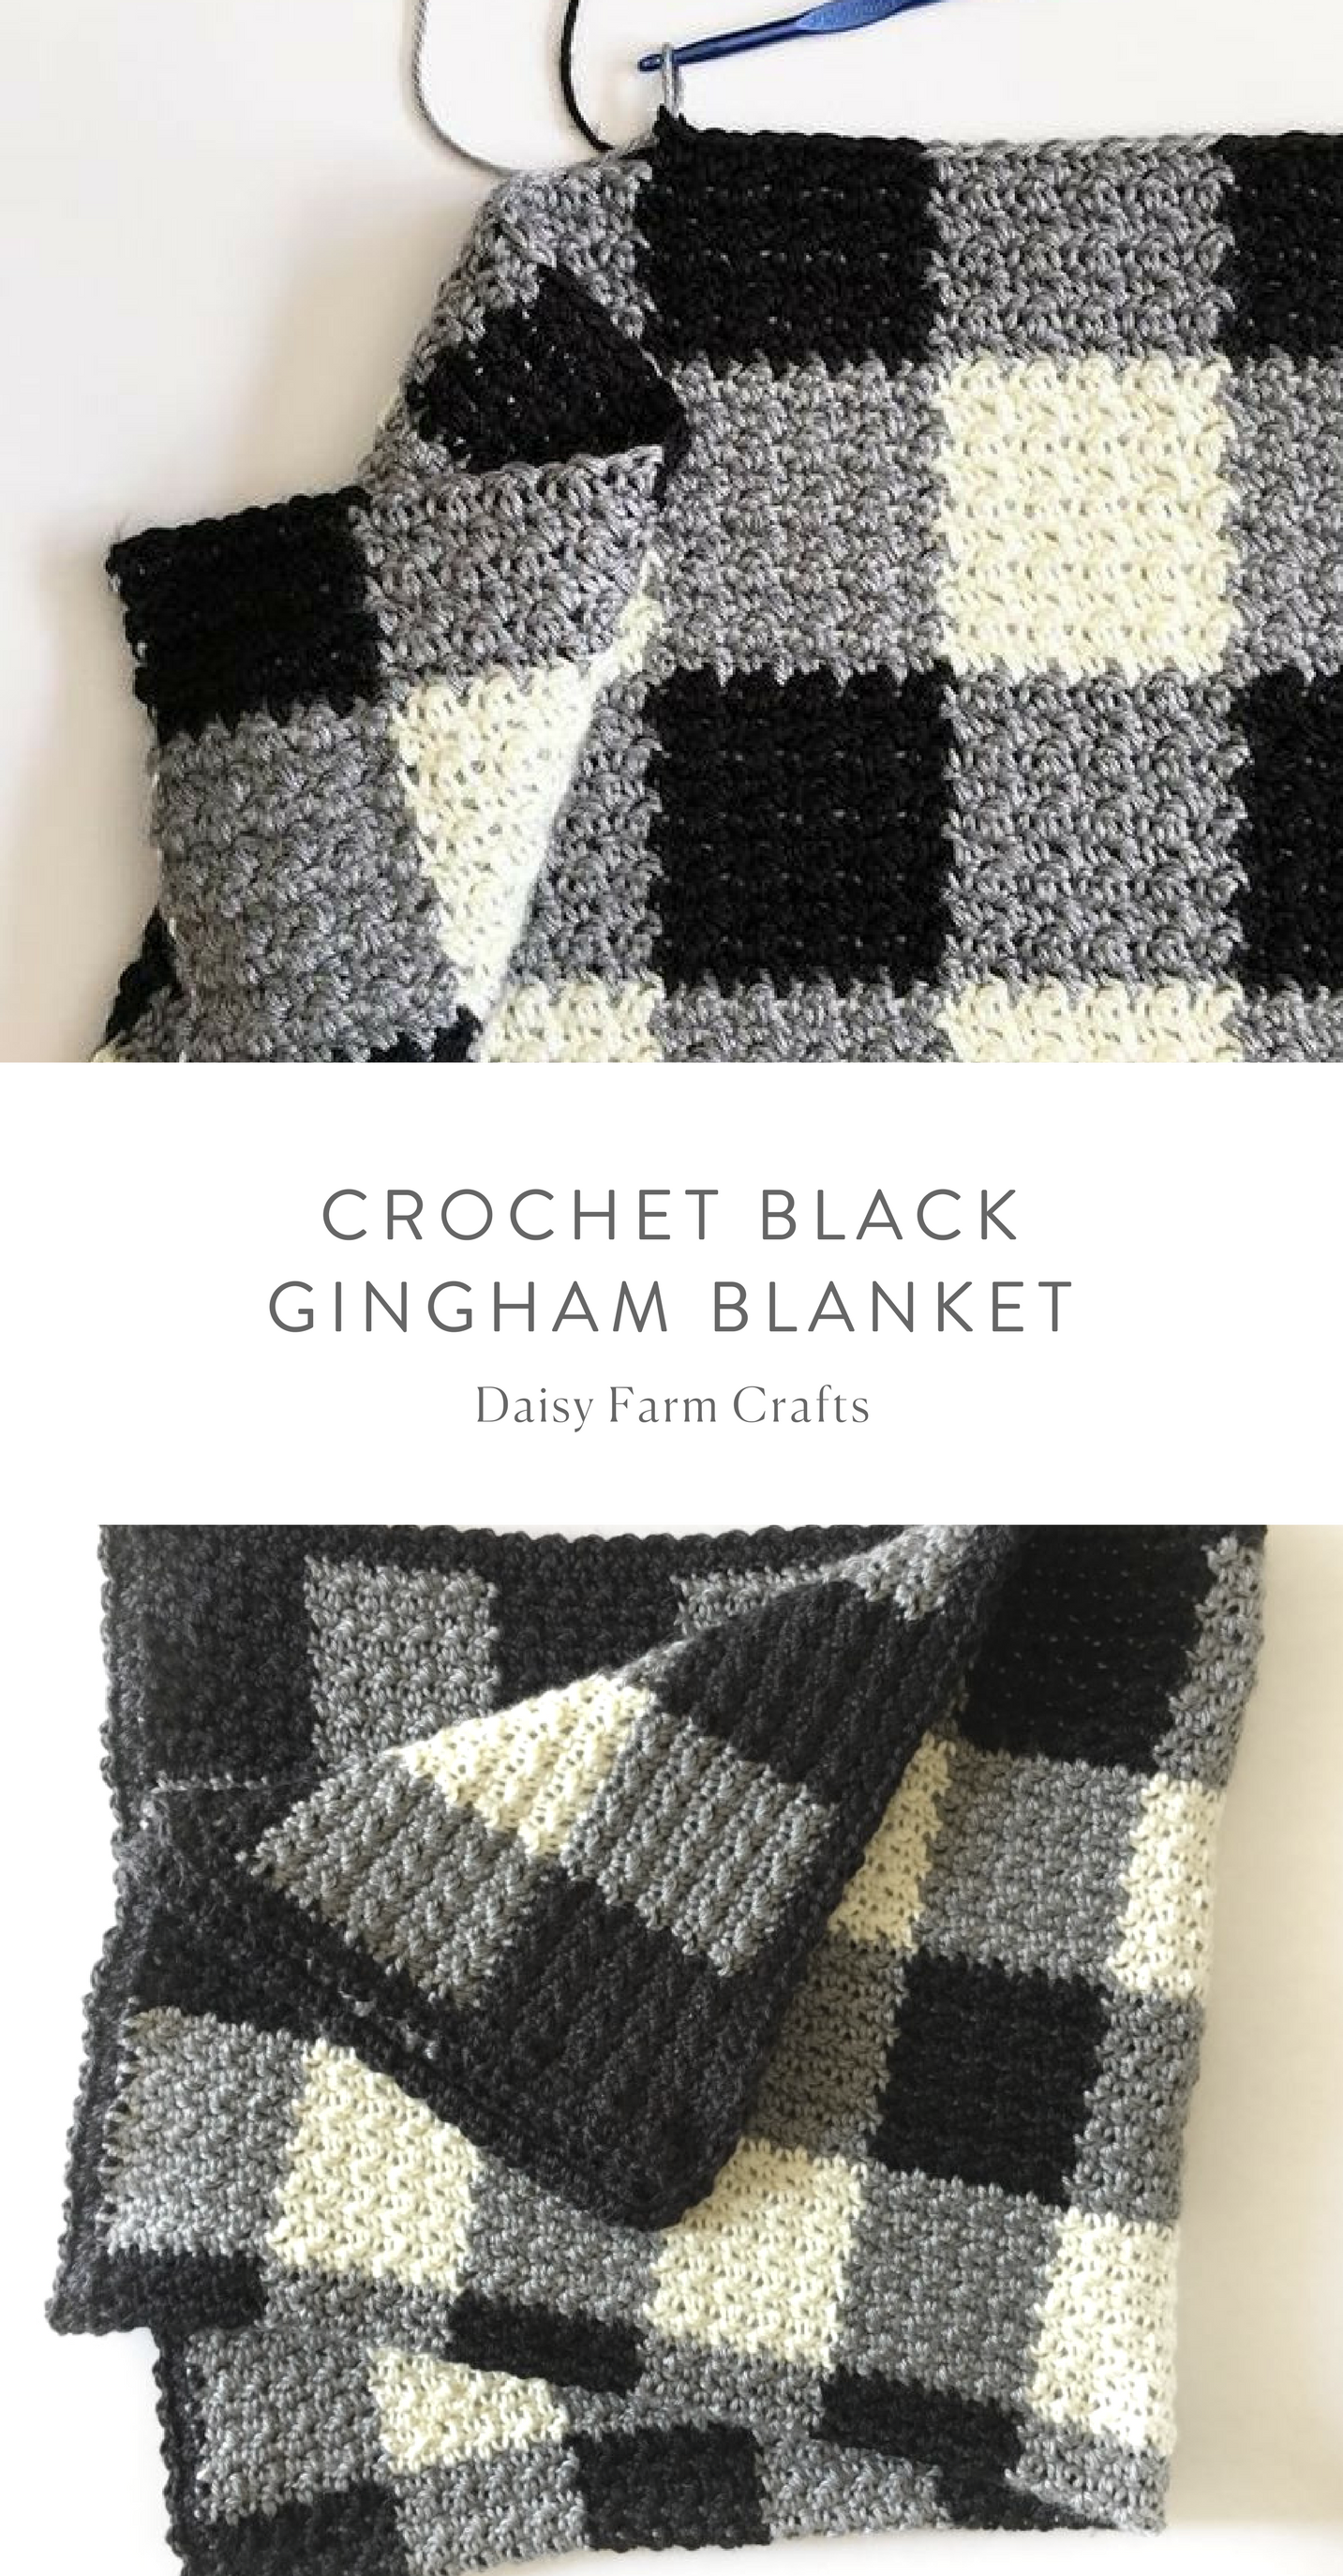 Free Pattern - Crochet Black Gingham Blanket | Crochet How to\'s ...